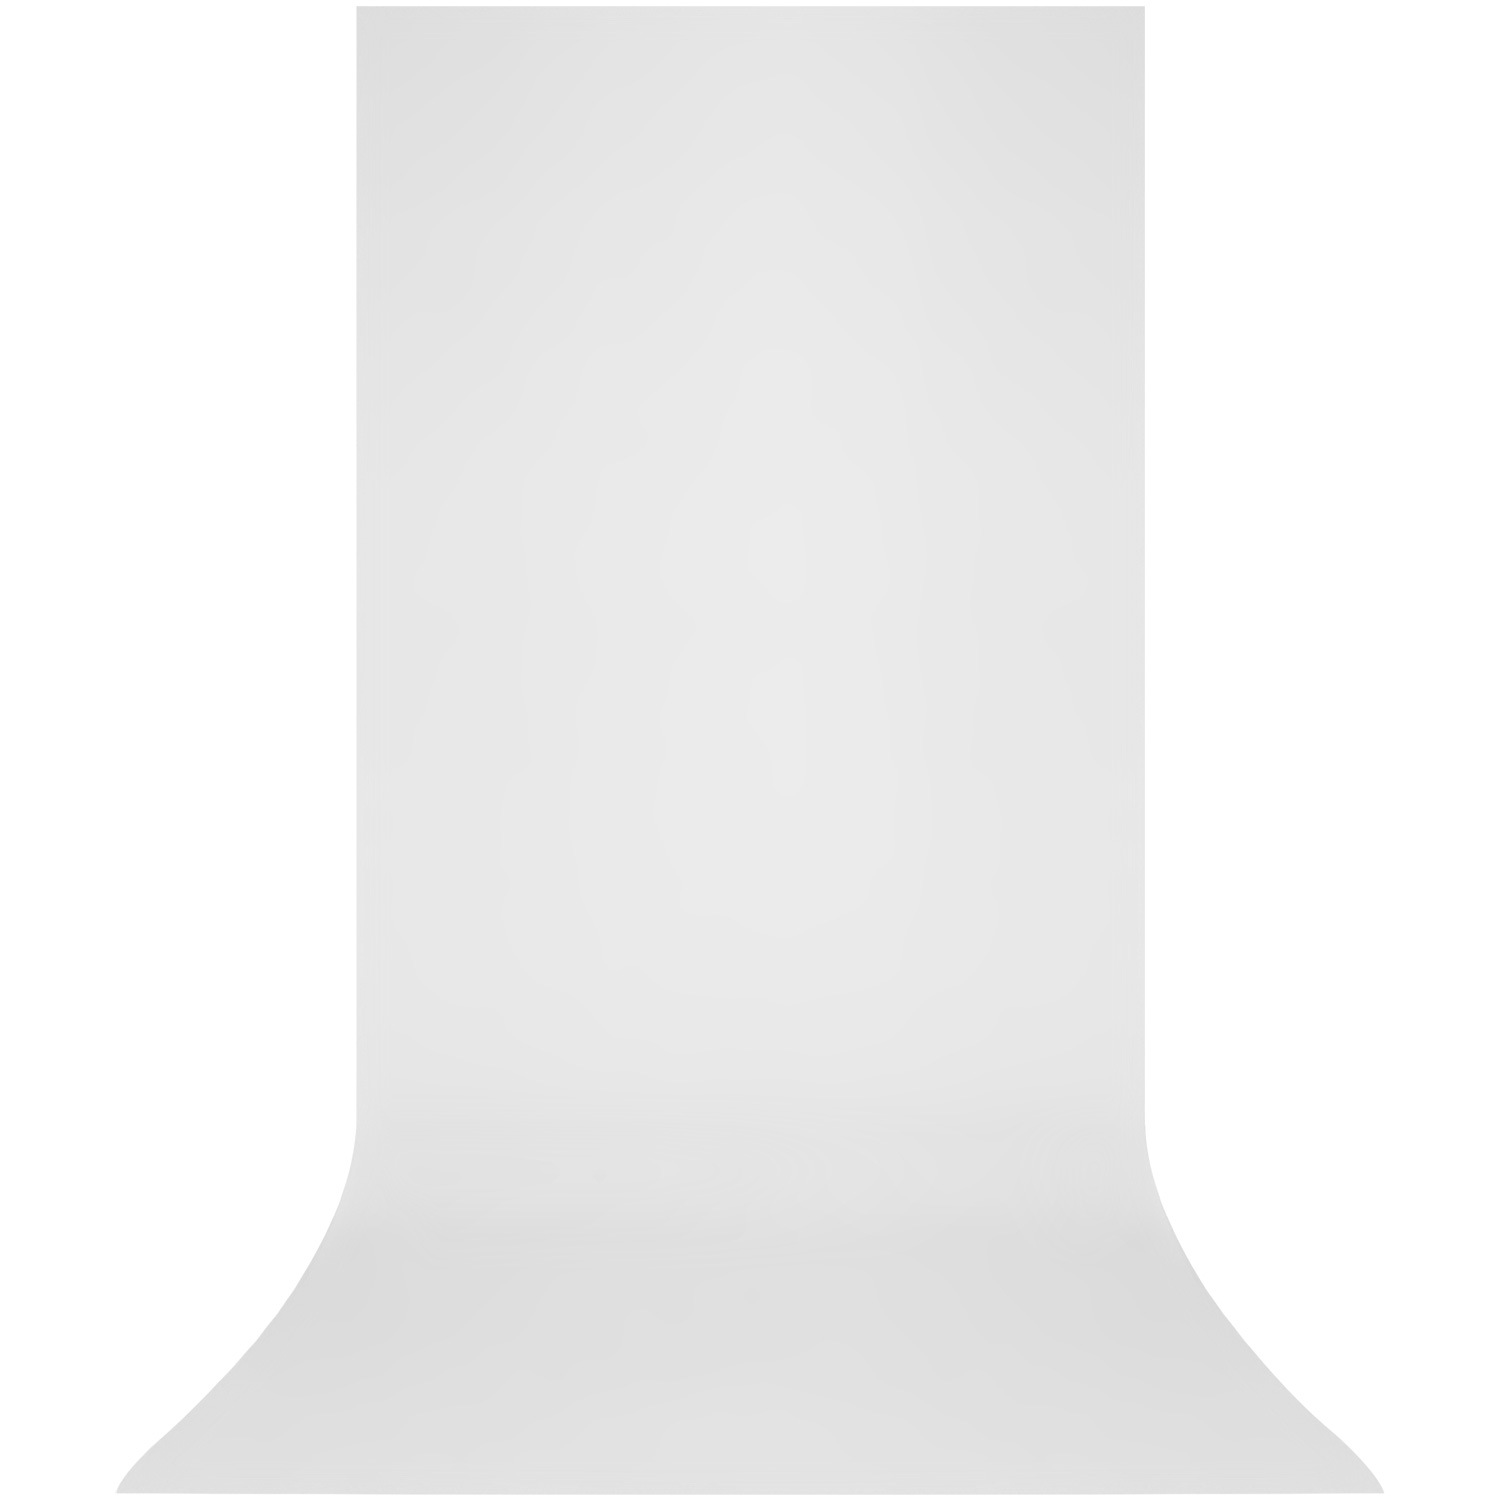 X-Drop Wrinkle-Resistant Backdrop - High-Key White Sweep (5' x 12')